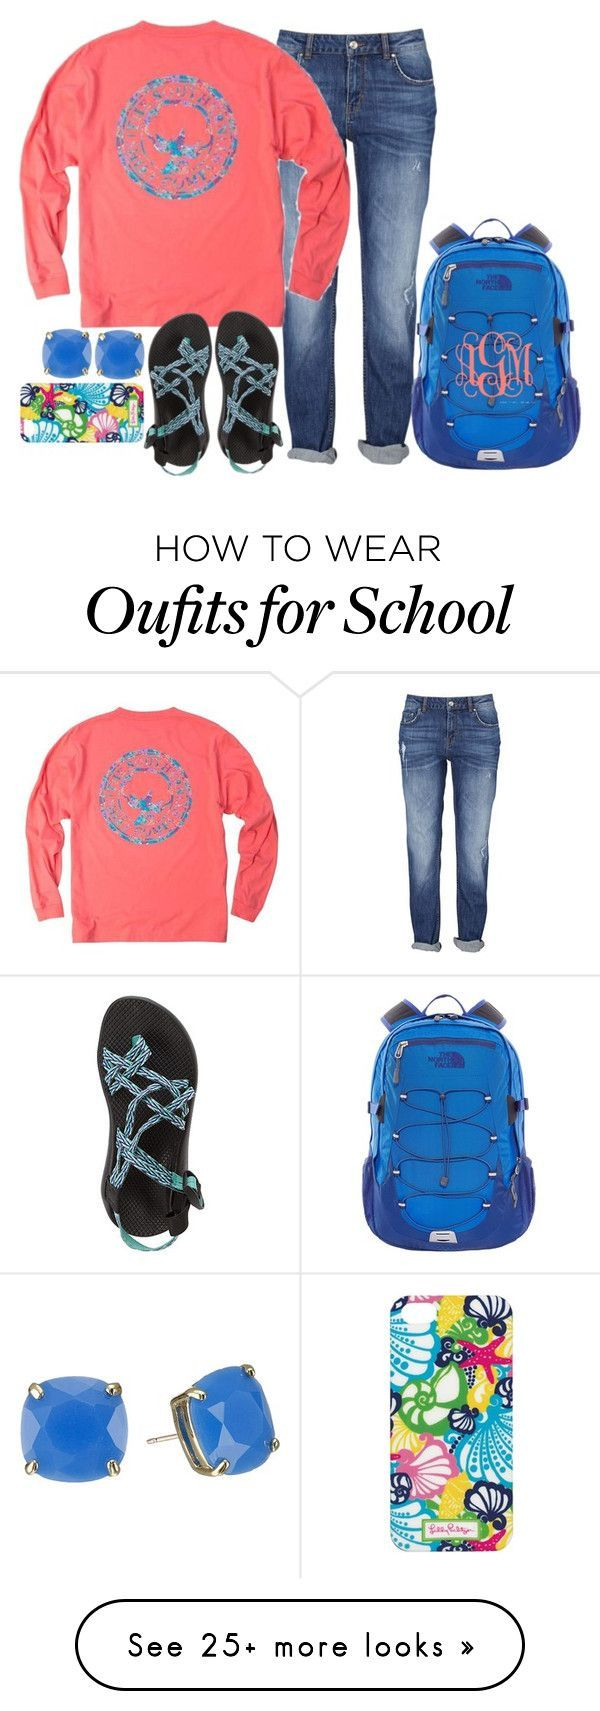 """school today"" by kierstinmoyers on Polyvore featuring moda, Chaco, Kate Spade, Lilly Pulitzer, The North Face, women's clothing, women, female, woman e misses"